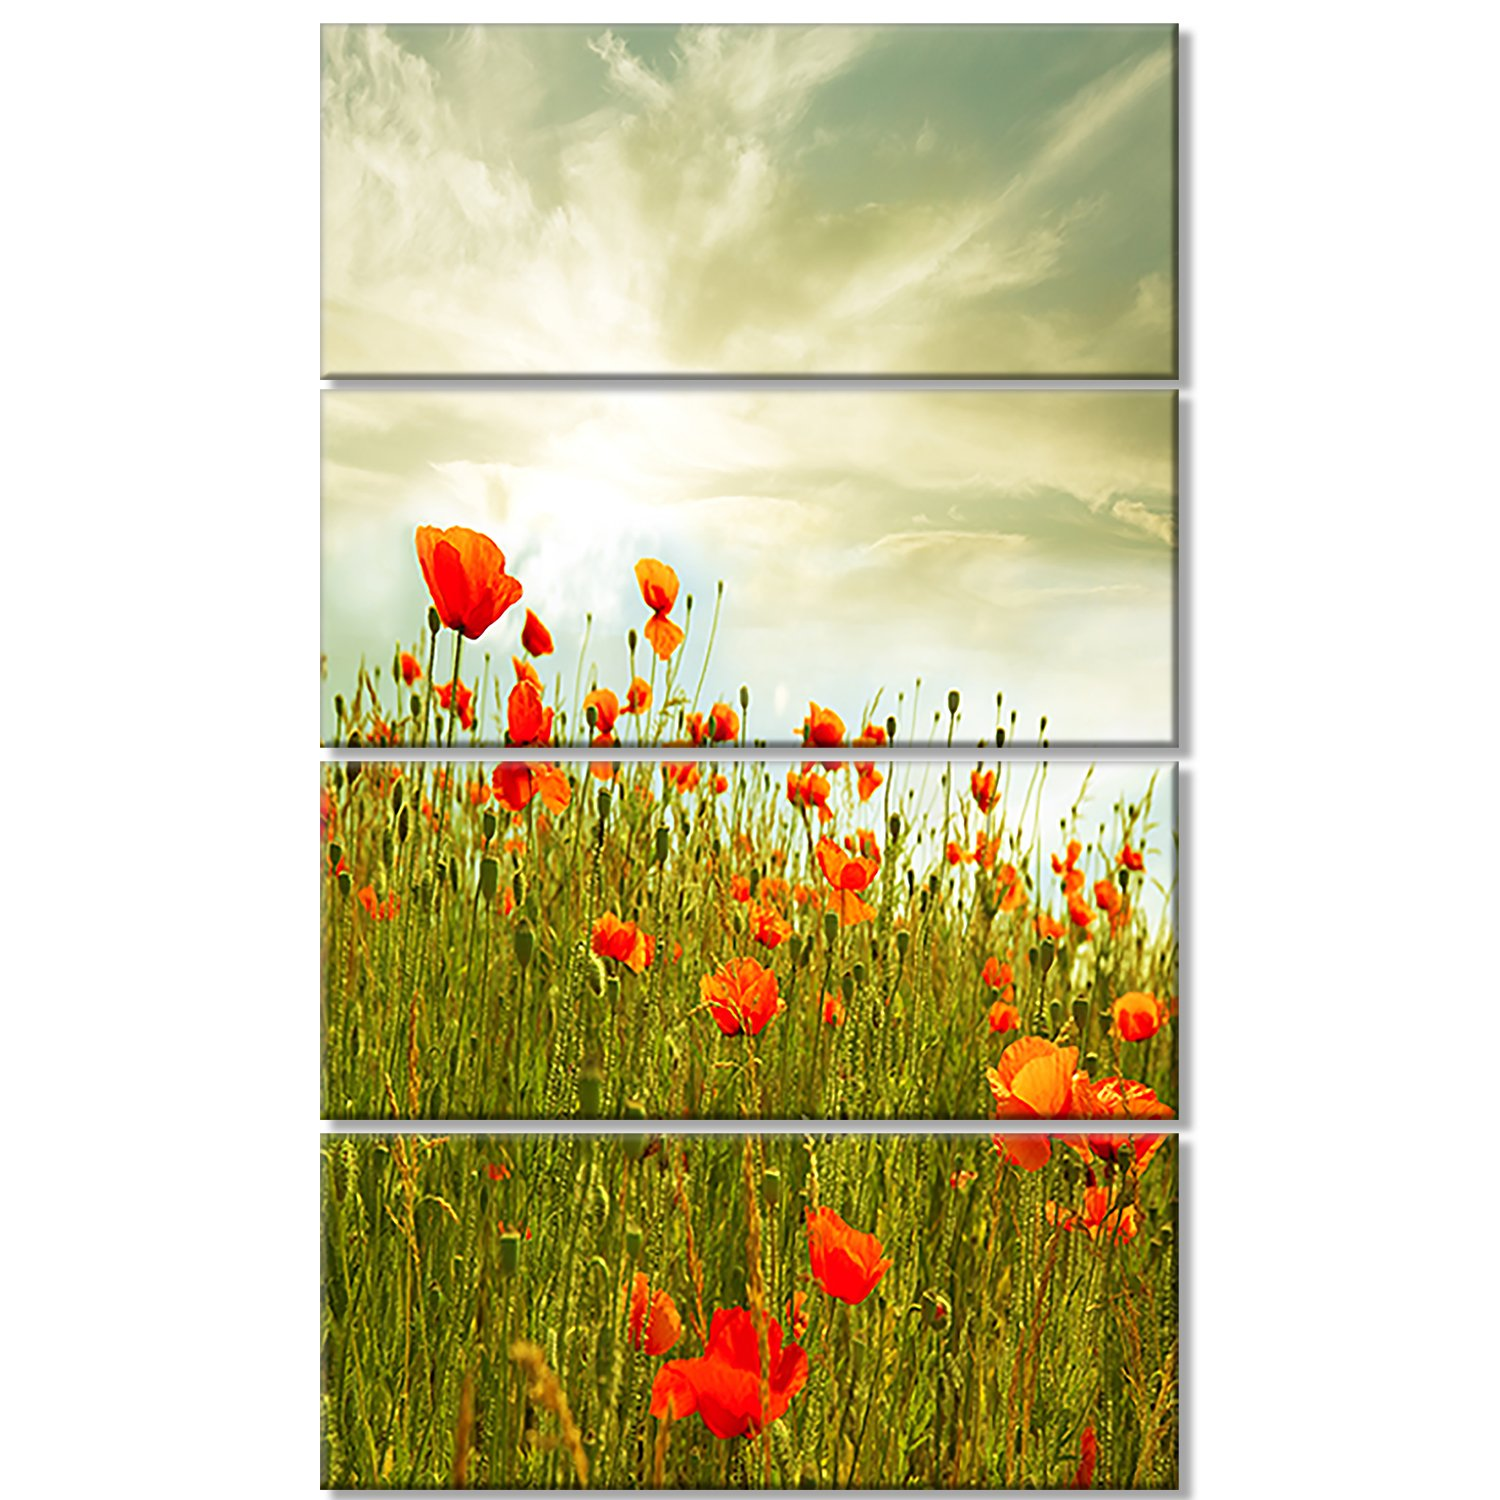 Amazon.com: Design Art Red Poppy Flowers in Green Field Floral on ...